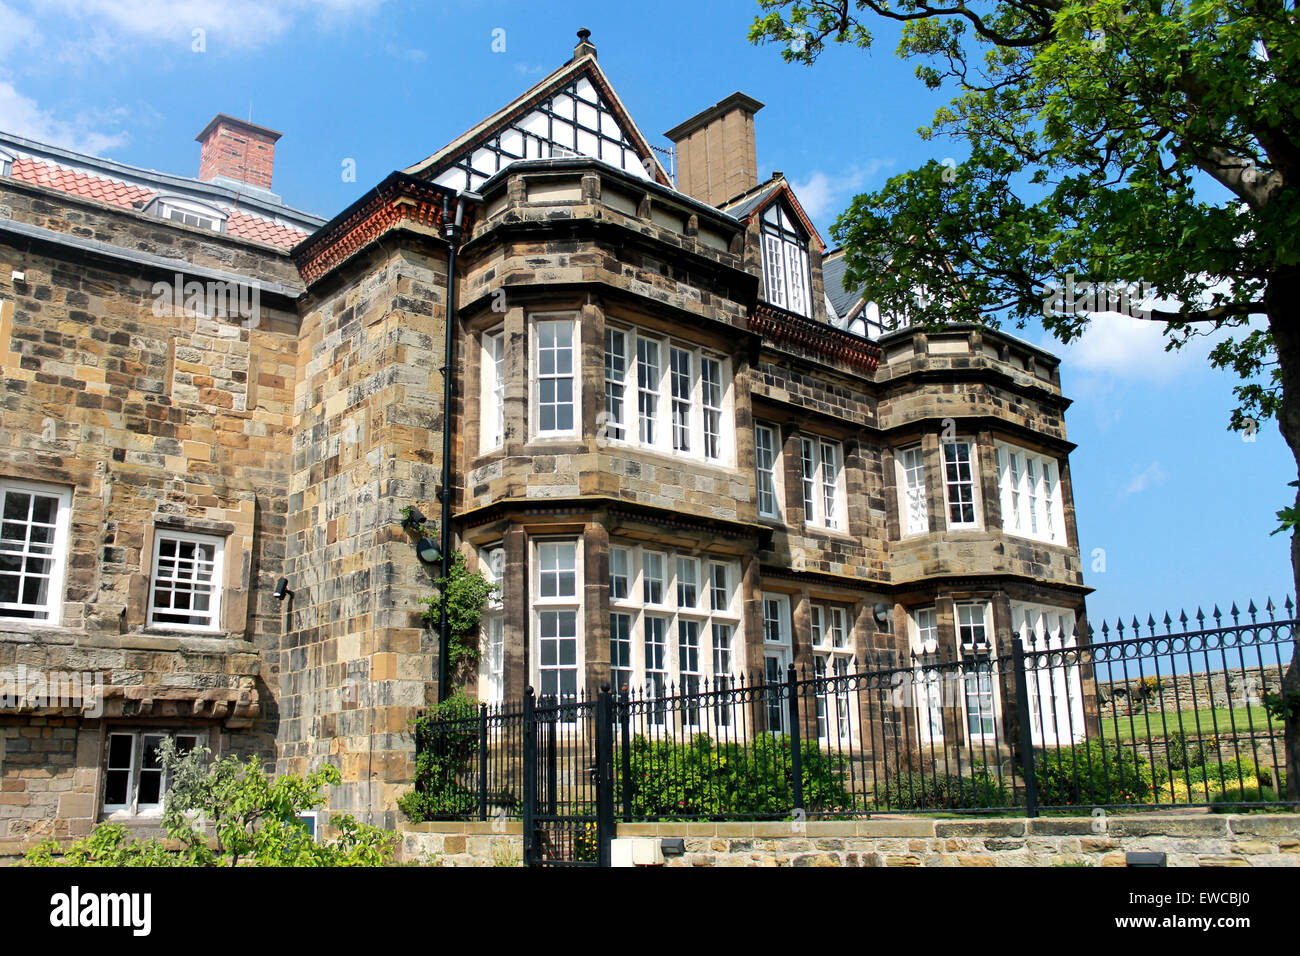 Exterior of a traditional English manor house. - Stock Image